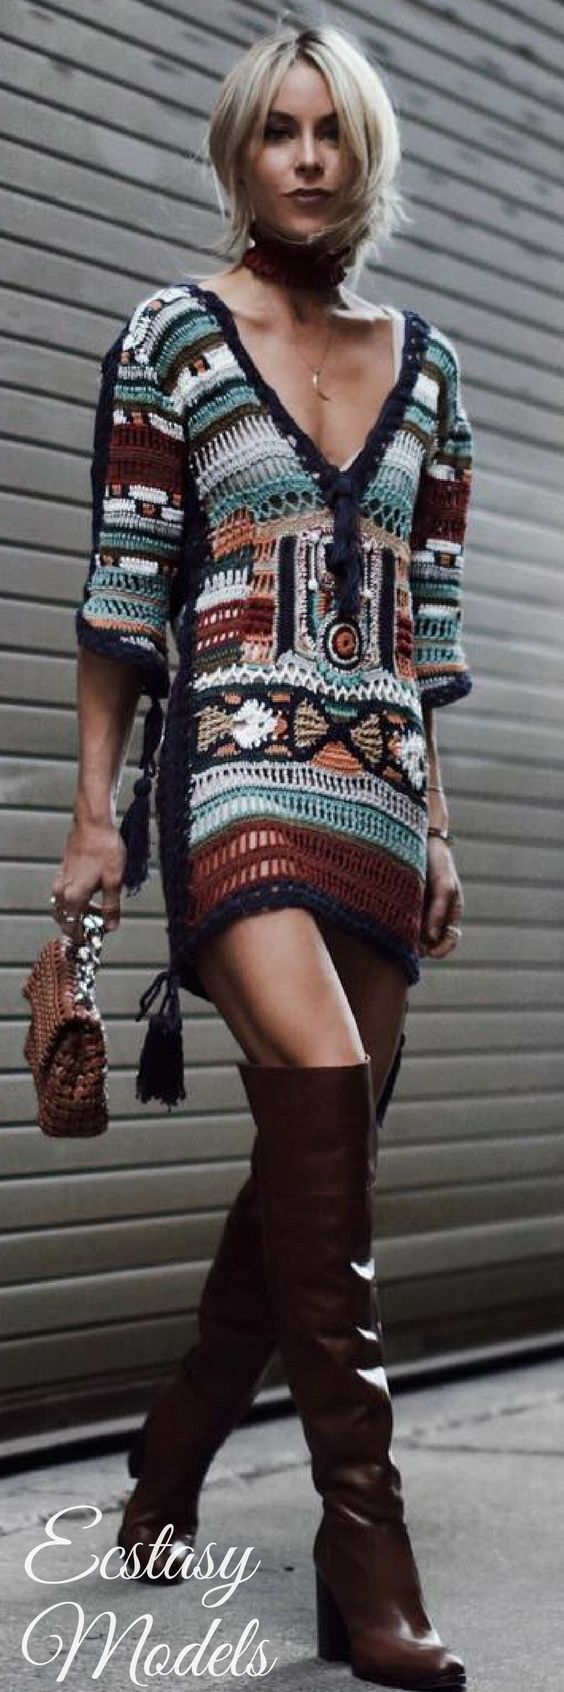 Deep V sweater dress in Aztec and Boho shades with OTK boots.  The long silver chain link cross-body bag adds charm & an edgy accessory to a plain 2 piece style: